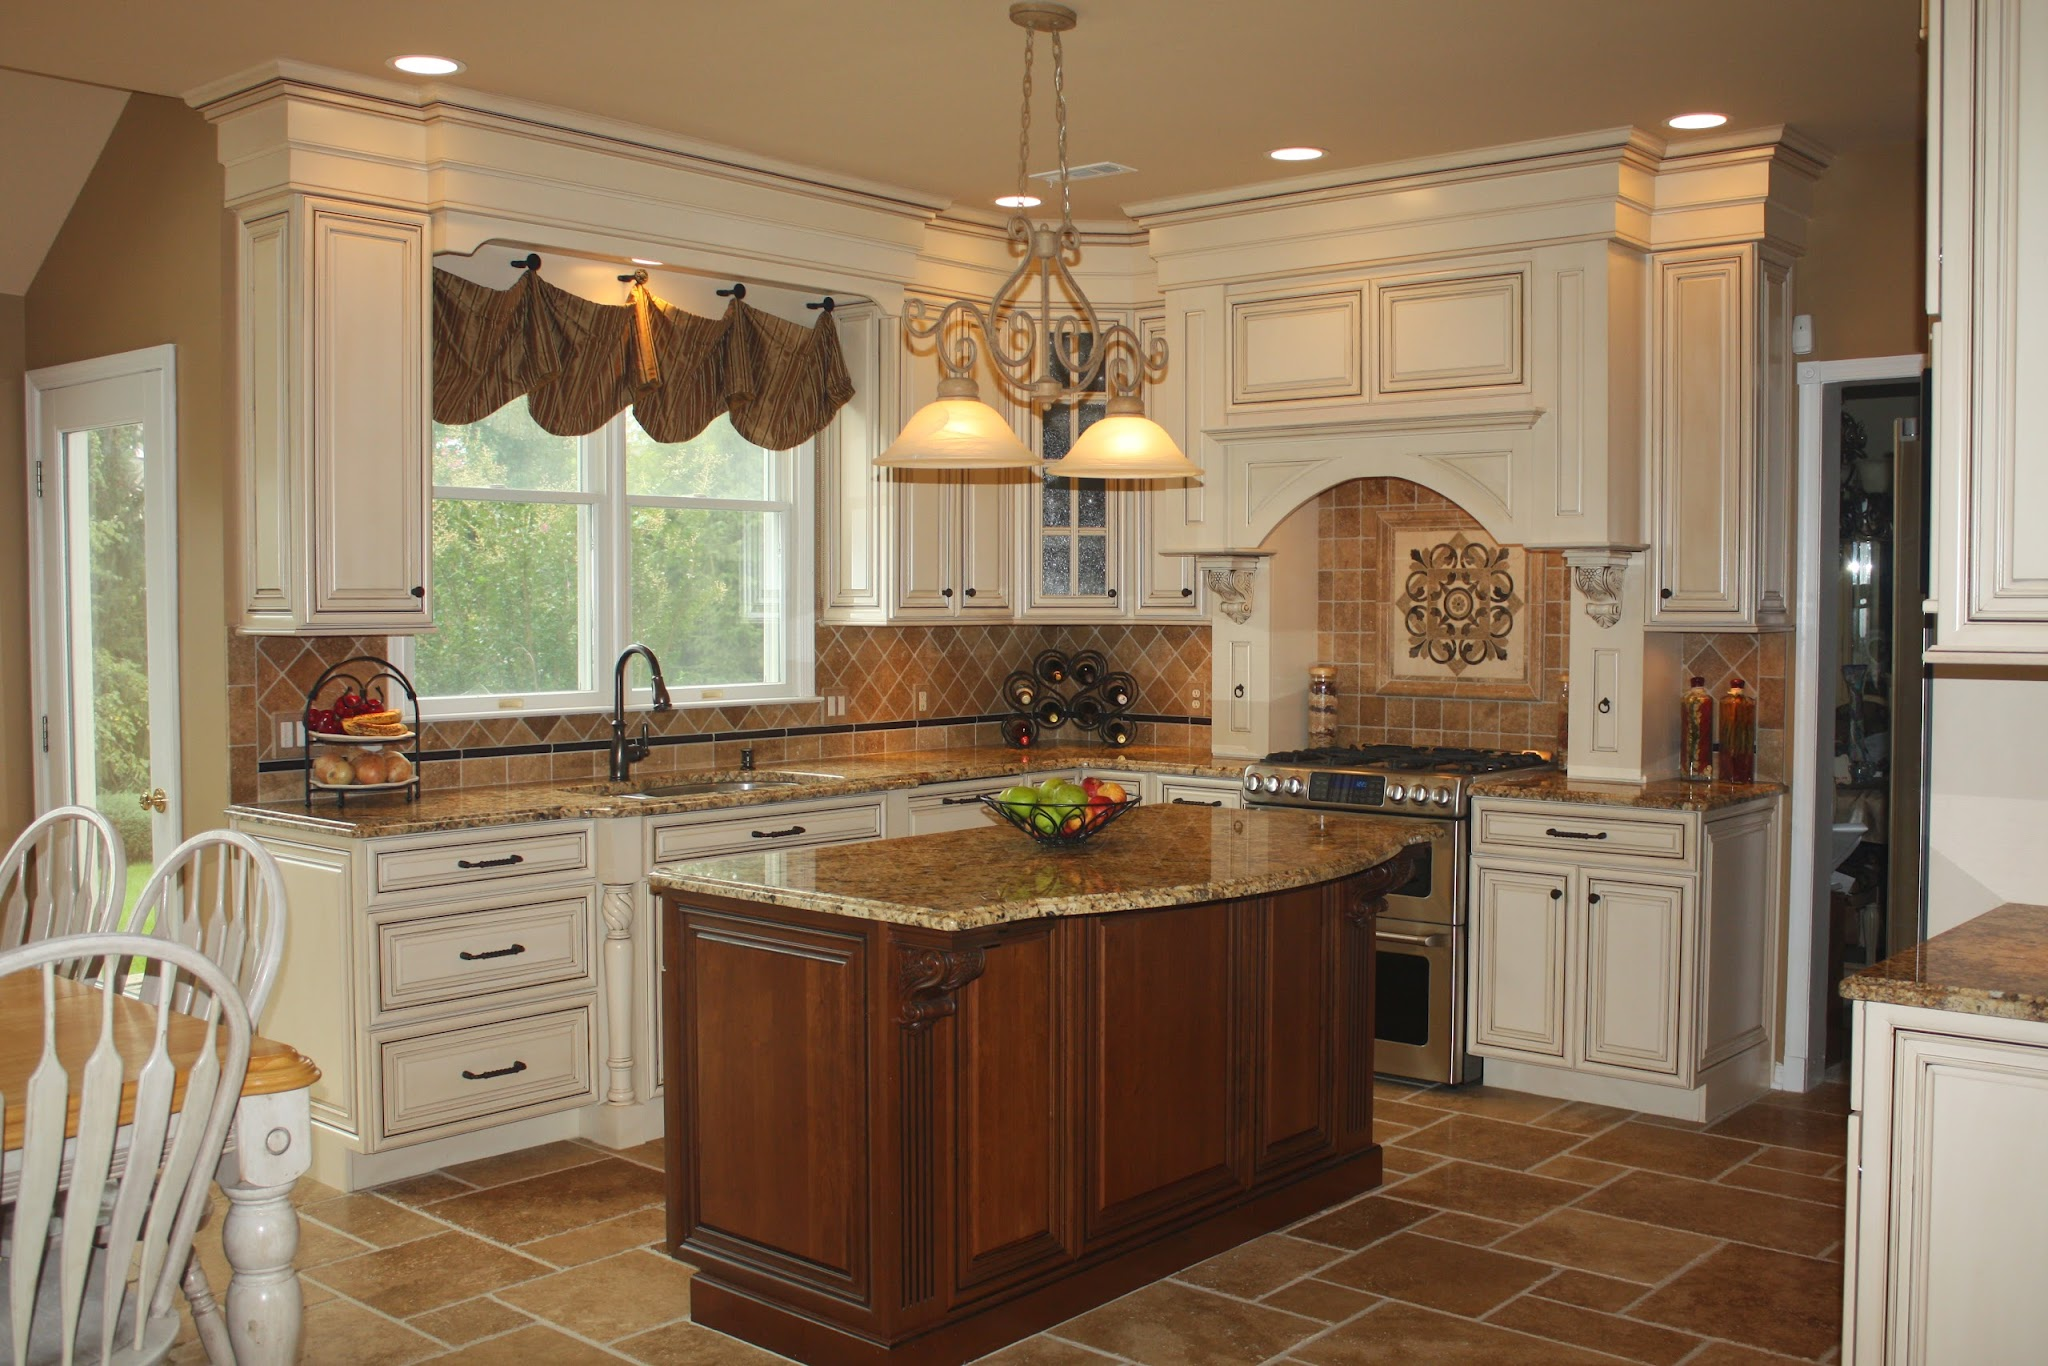 Houzz kitchen dreams house furniture for Kitchen remodel